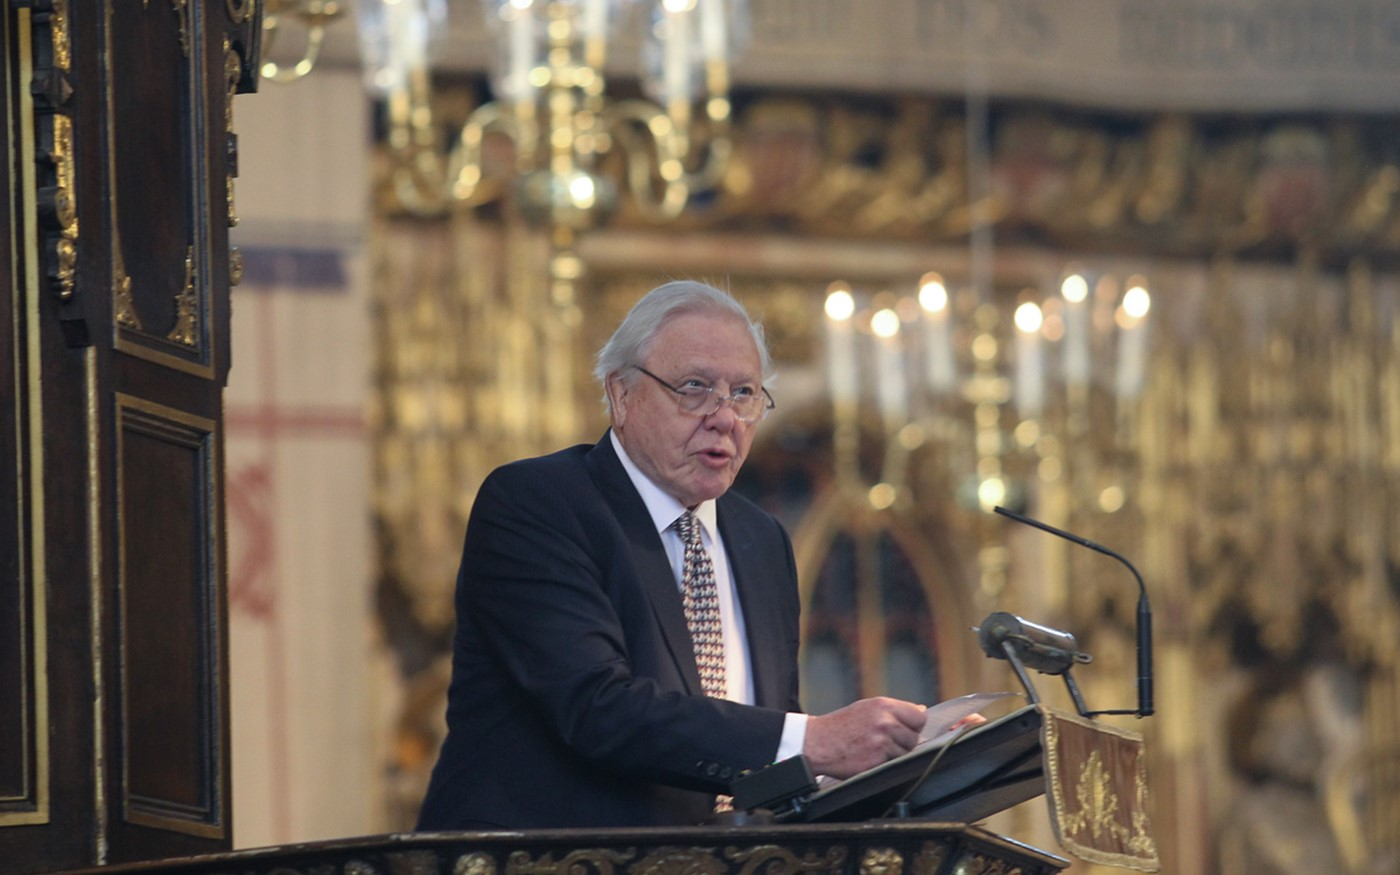 Sir David Attenborough reads his brother's address to the House of Lords